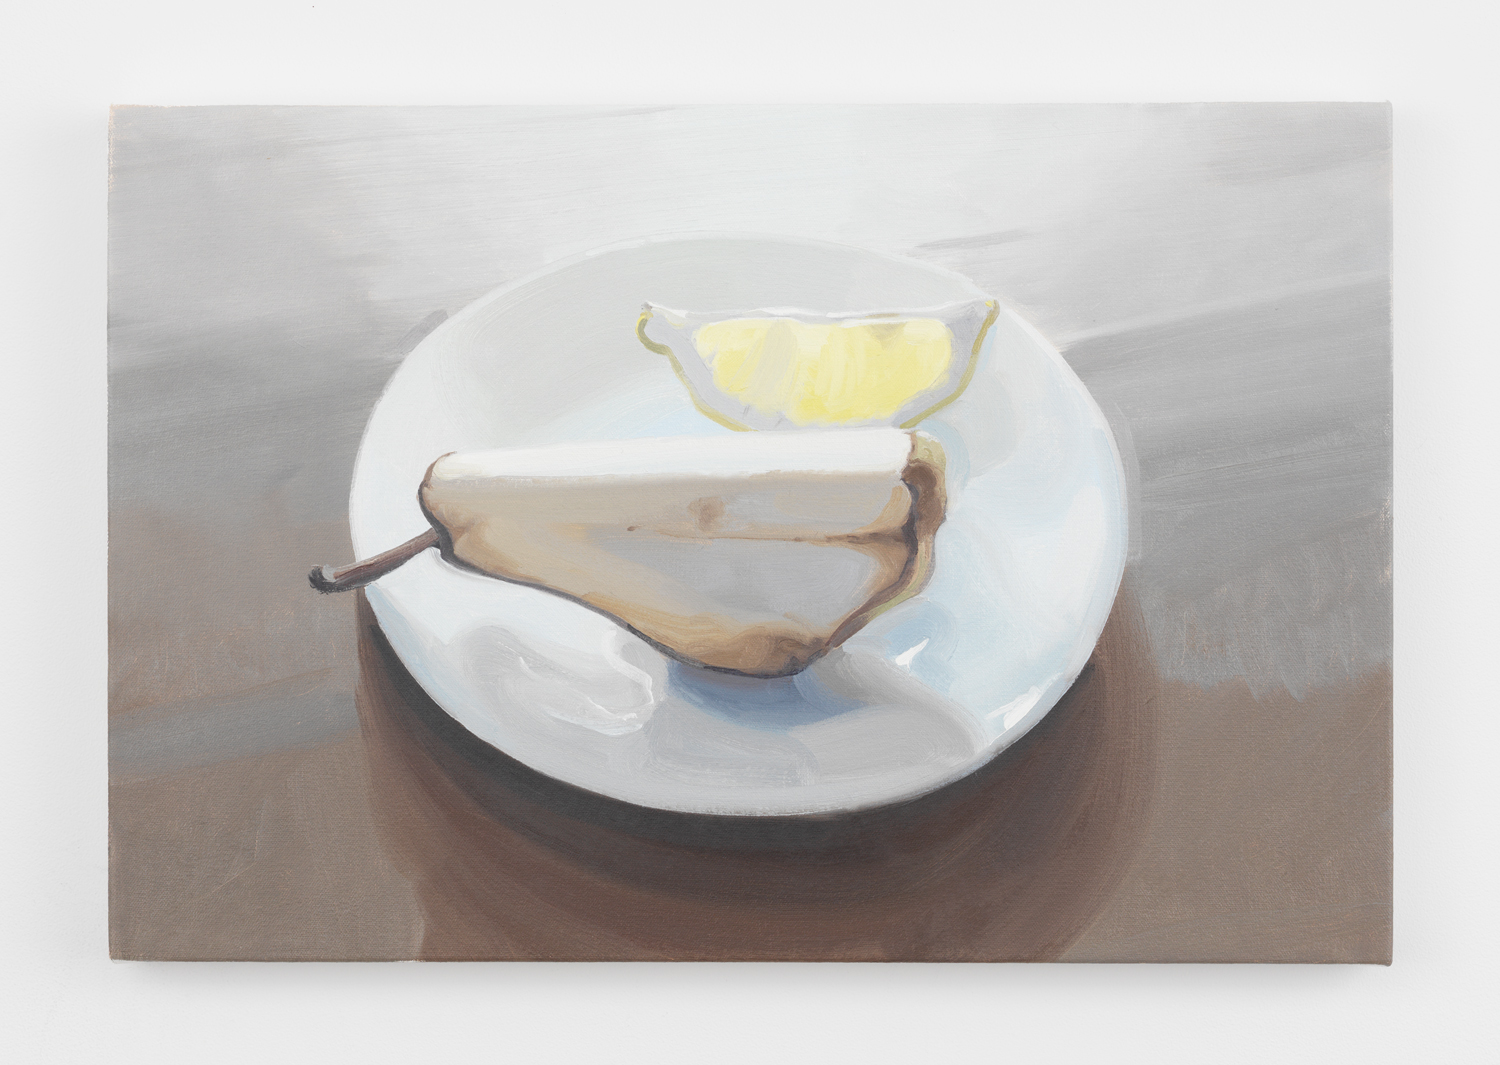 Nathaniel Robinson, Untitled, 2020, oil on canvas, 16h x 24w in.